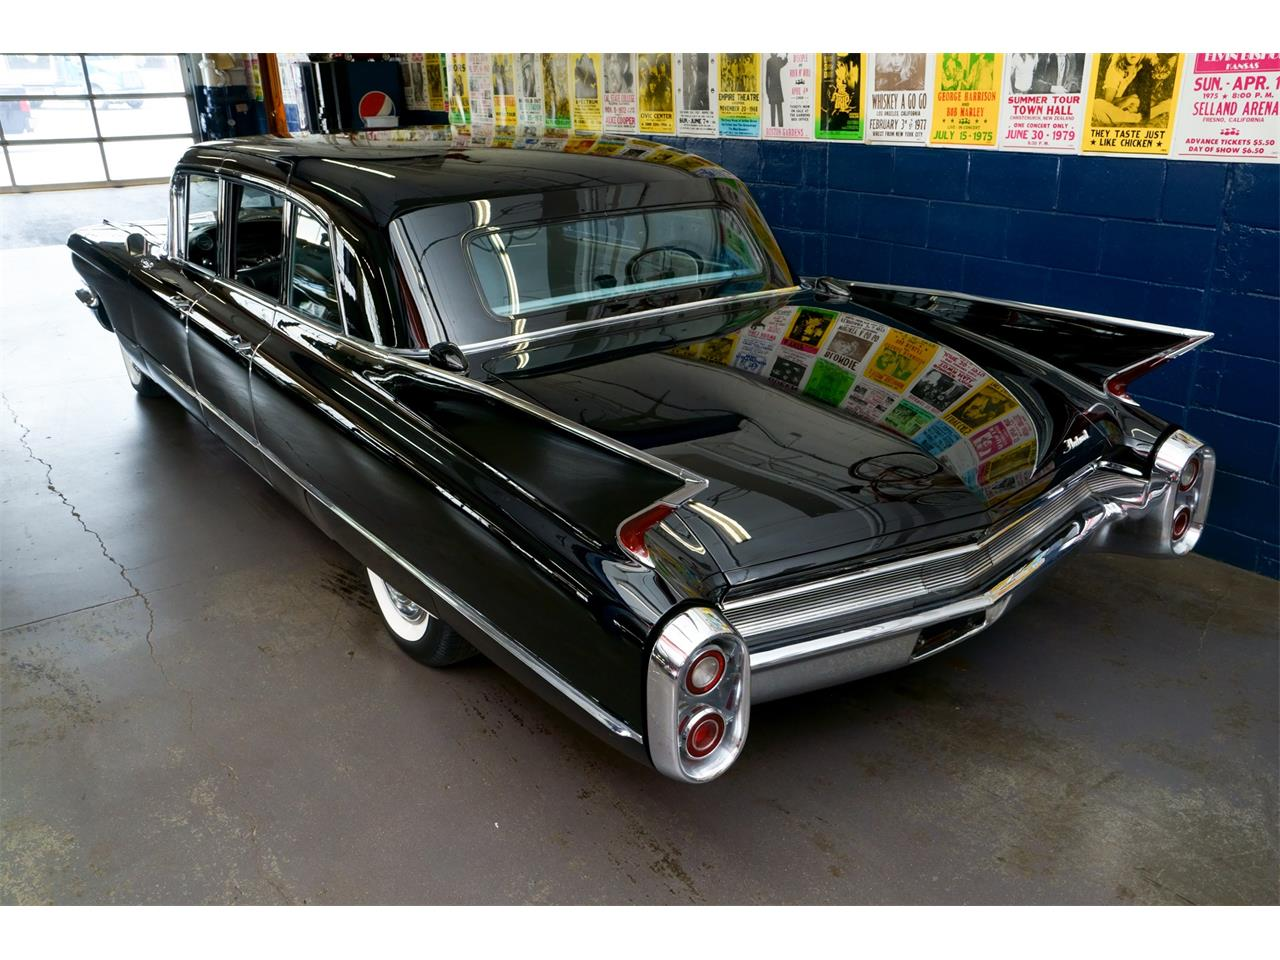 For Sale: 1960 Cadillac Fleetwood in Des Moines, Iowa